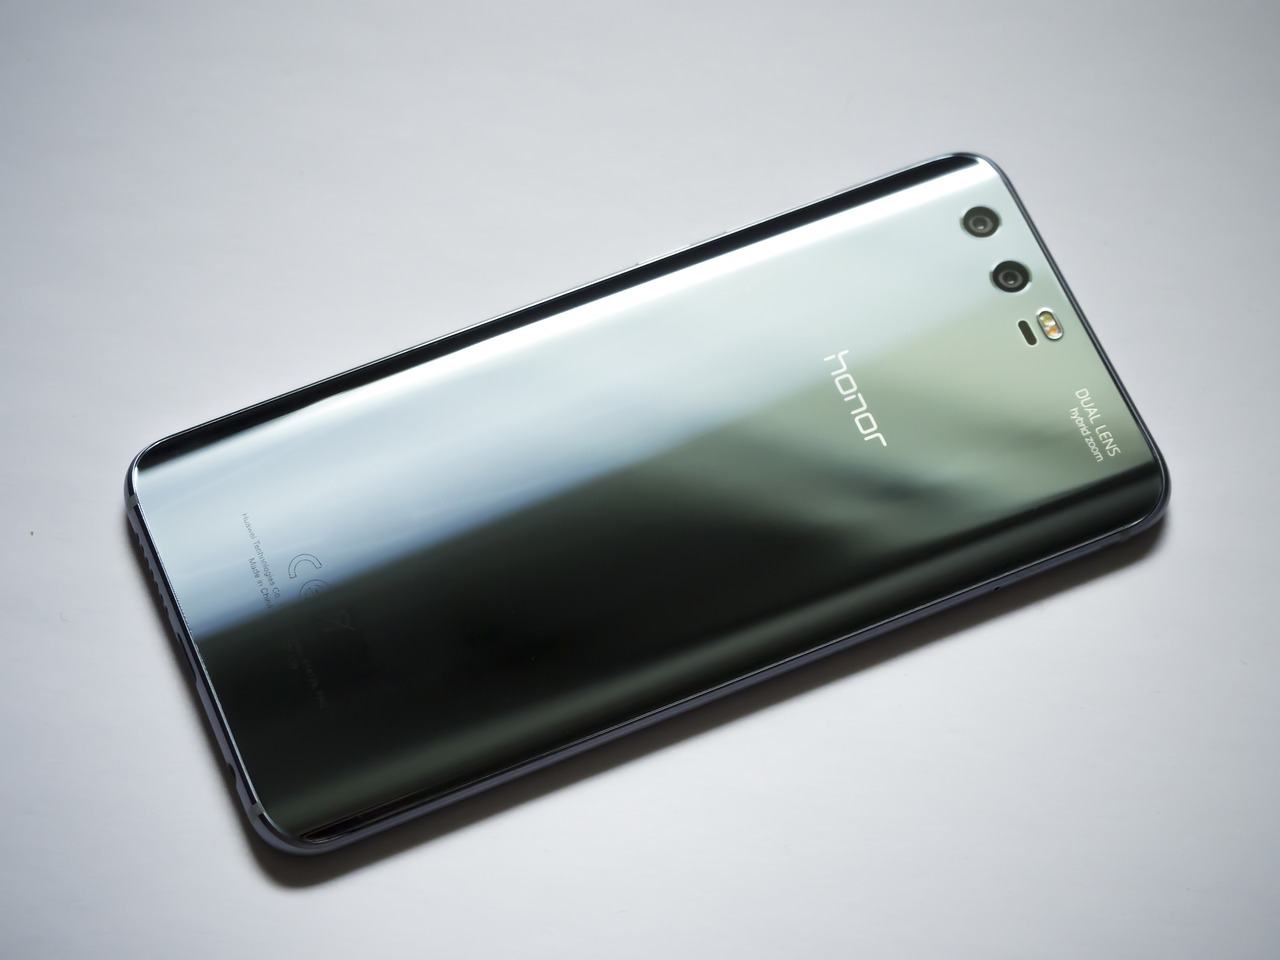 Huawei Mobile Phone shops in Nairobi, Kenya and customer care support contacts